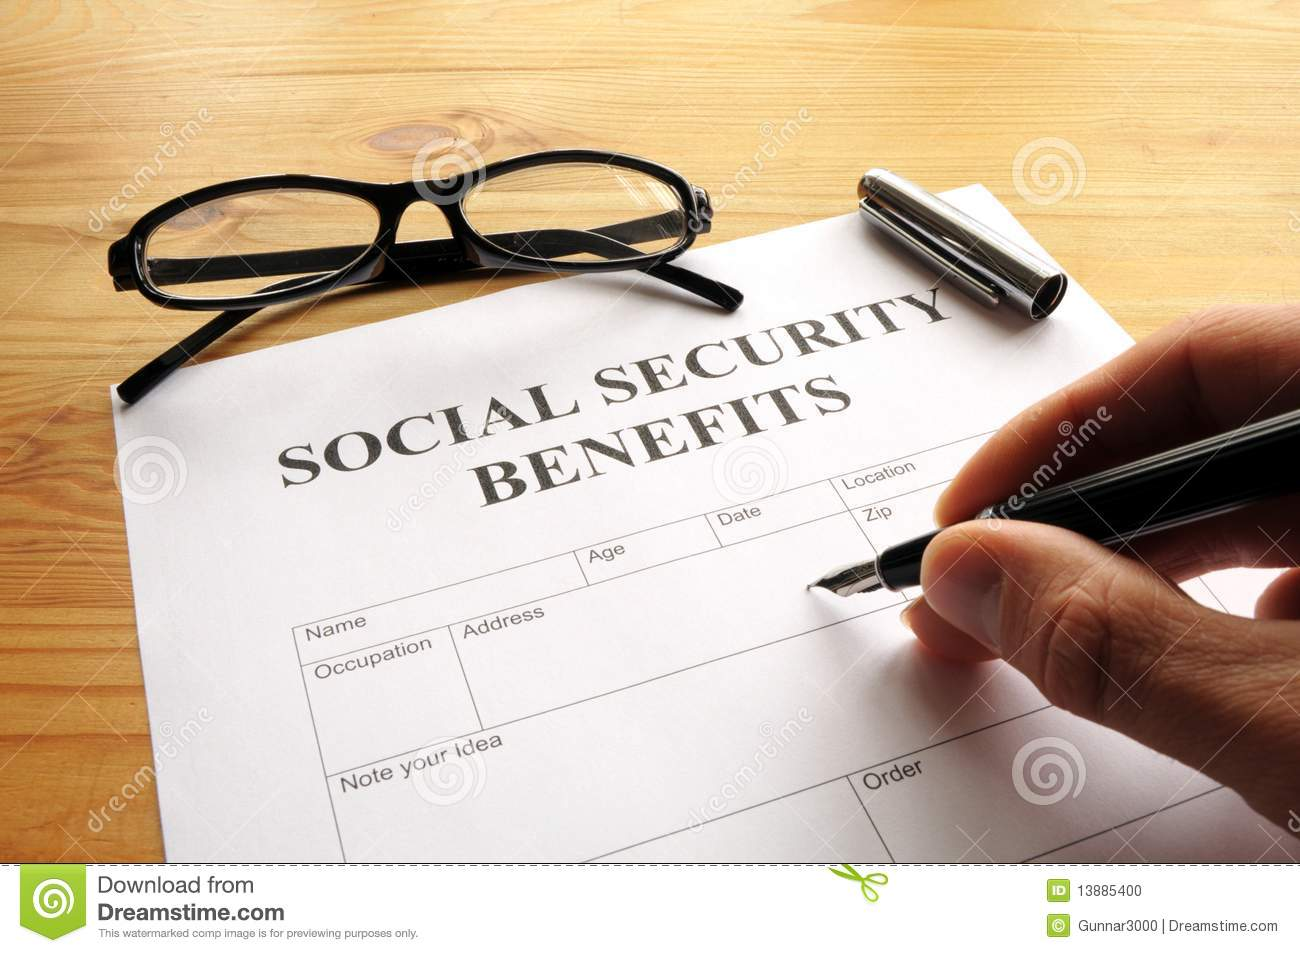 Some More Info About Social Security Benefits Worksheet